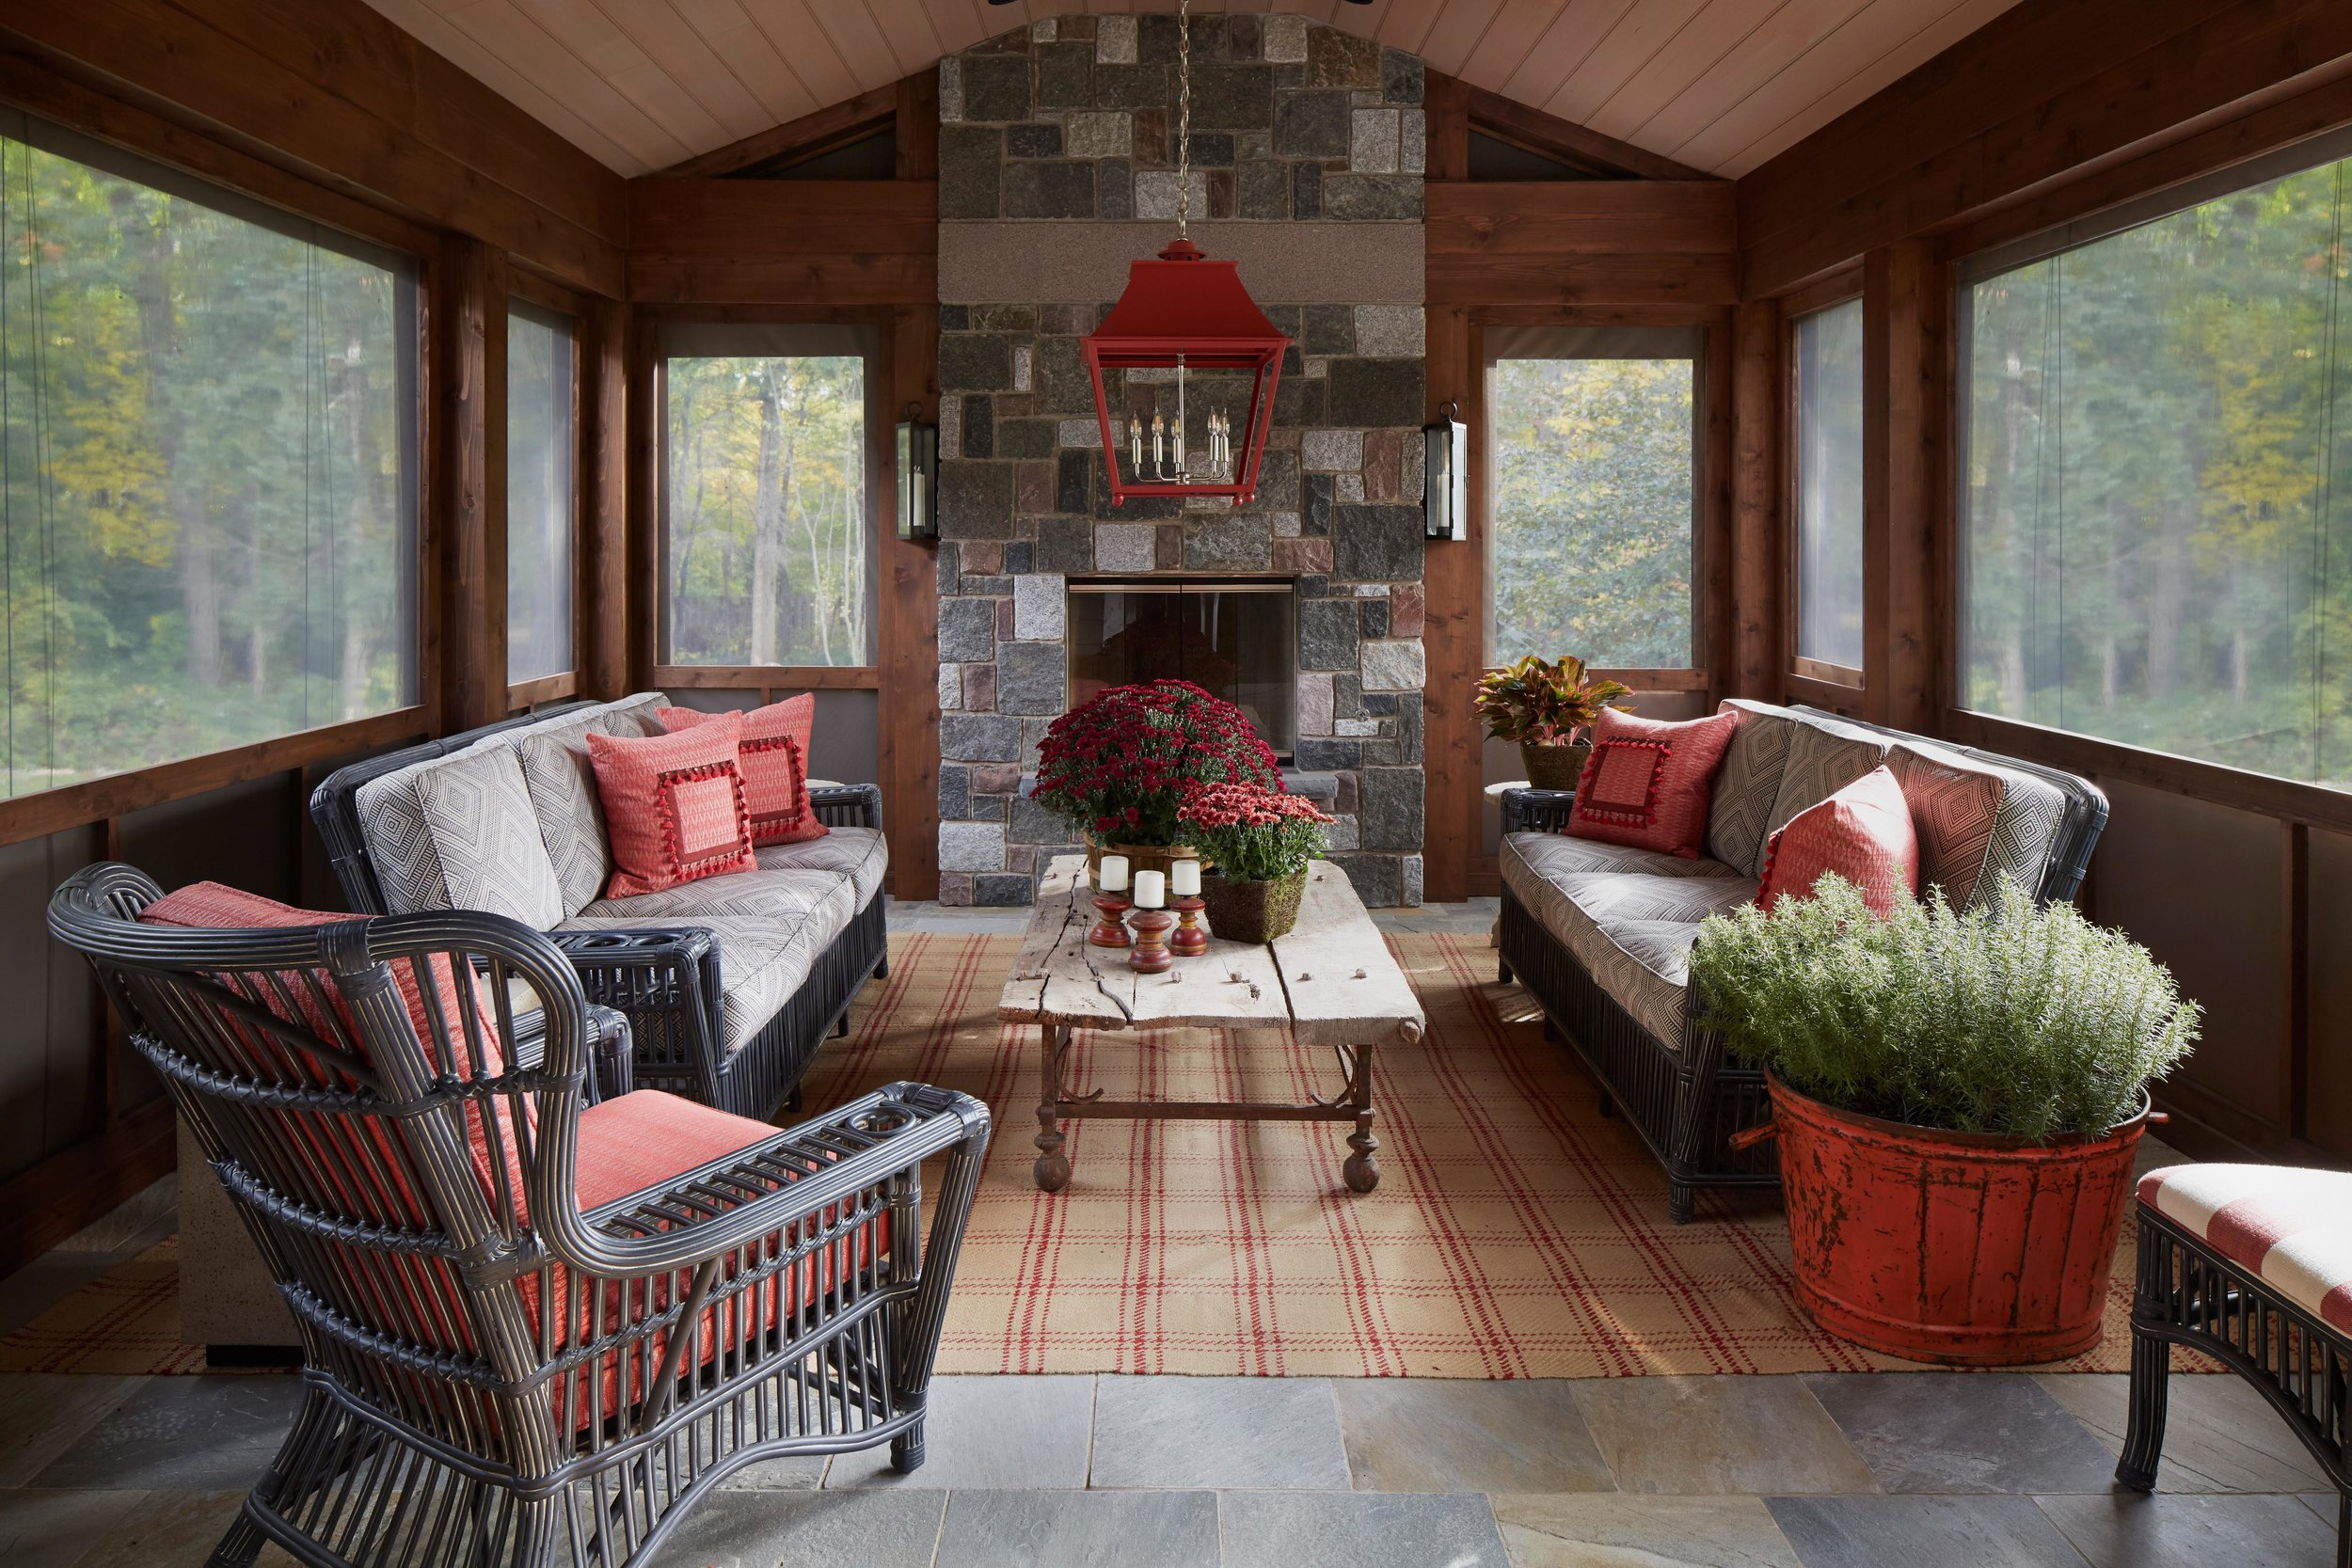 Rustic elegance on a screen porch with coral accents. Come see more interior design inspiration from Elizabeth Drake. Photo by Werner Straube. #interiordesign #classicdesign #traditionaldecor #housetour #elizabethdrake